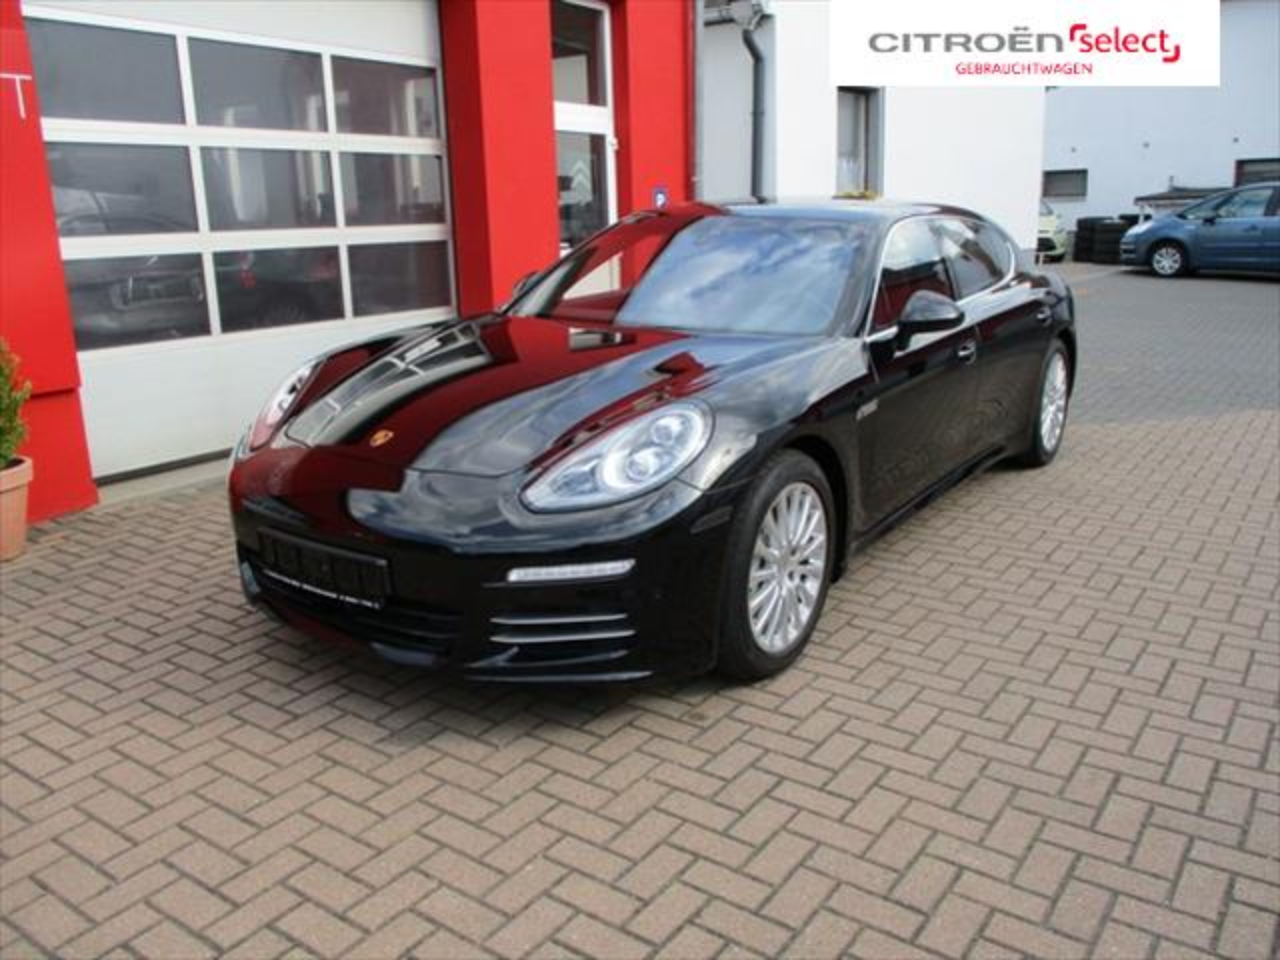 Porsche Panamera 4S EXECUTIVE VOLL ACC LUFT BOSE KAMERA LED